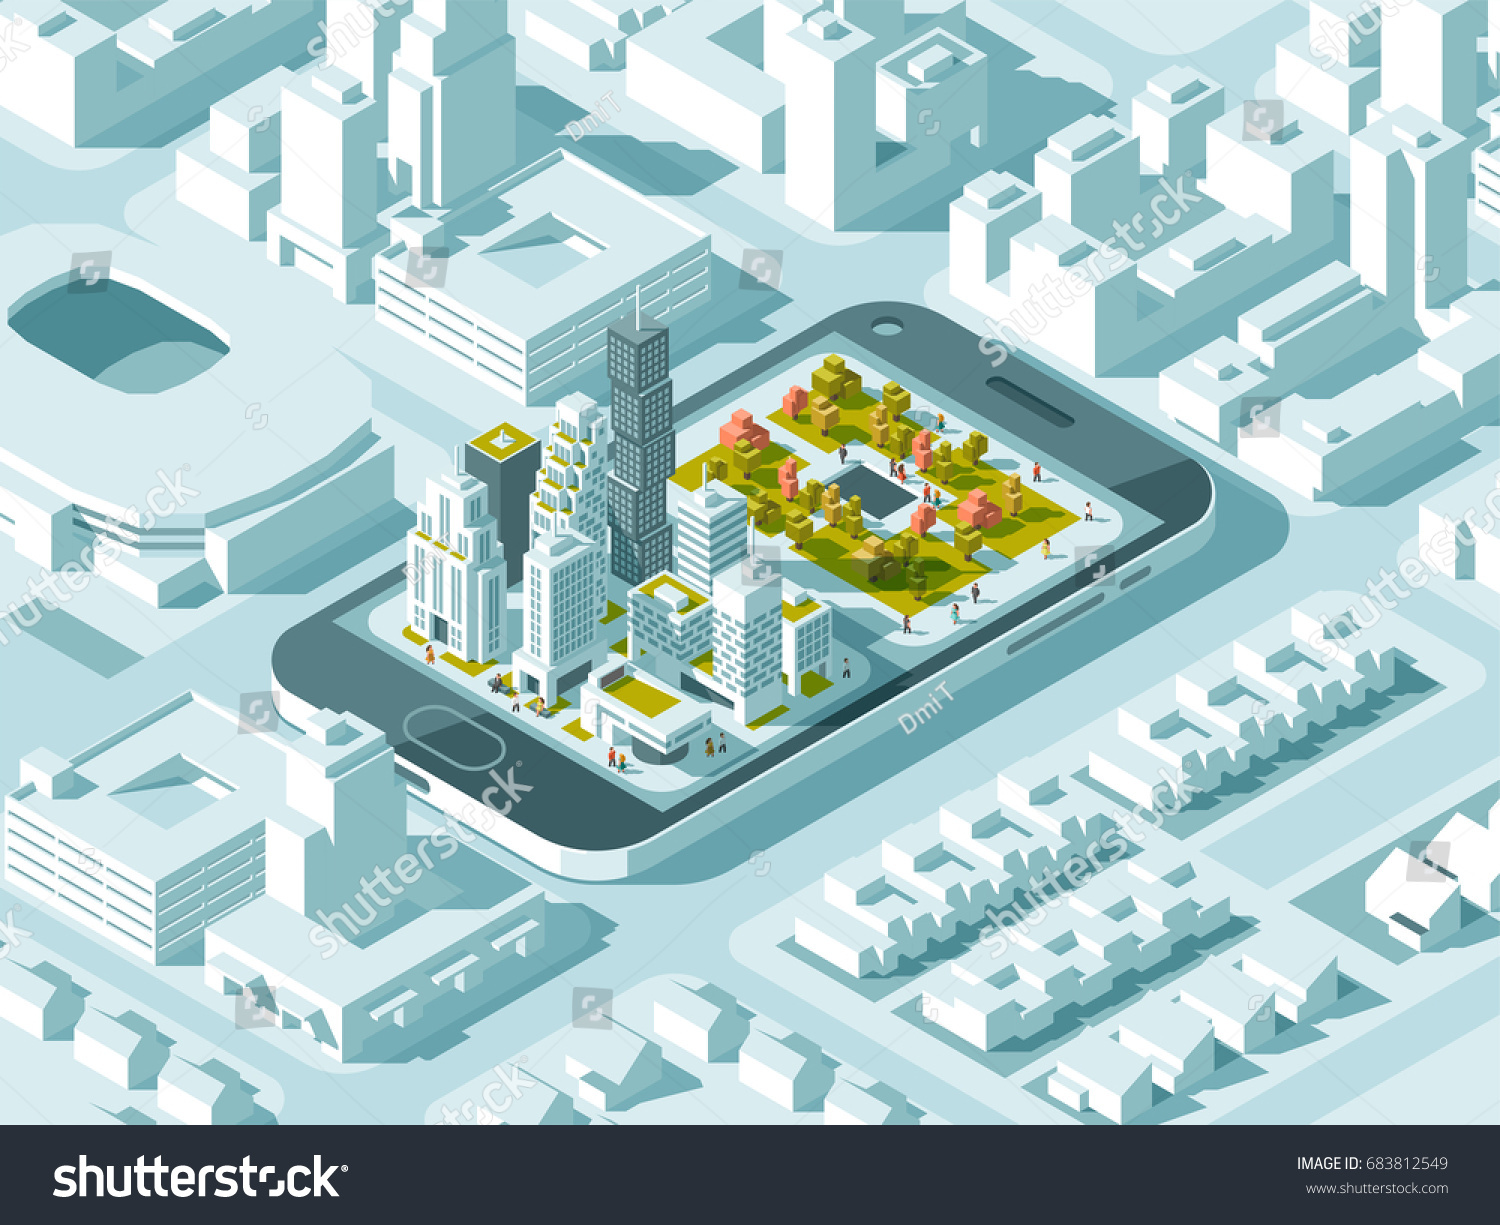 city isometric plan road buildings on stock vector 683812549 shutterstock. Black Bedroom Furniture Sets. Home Design Ideas